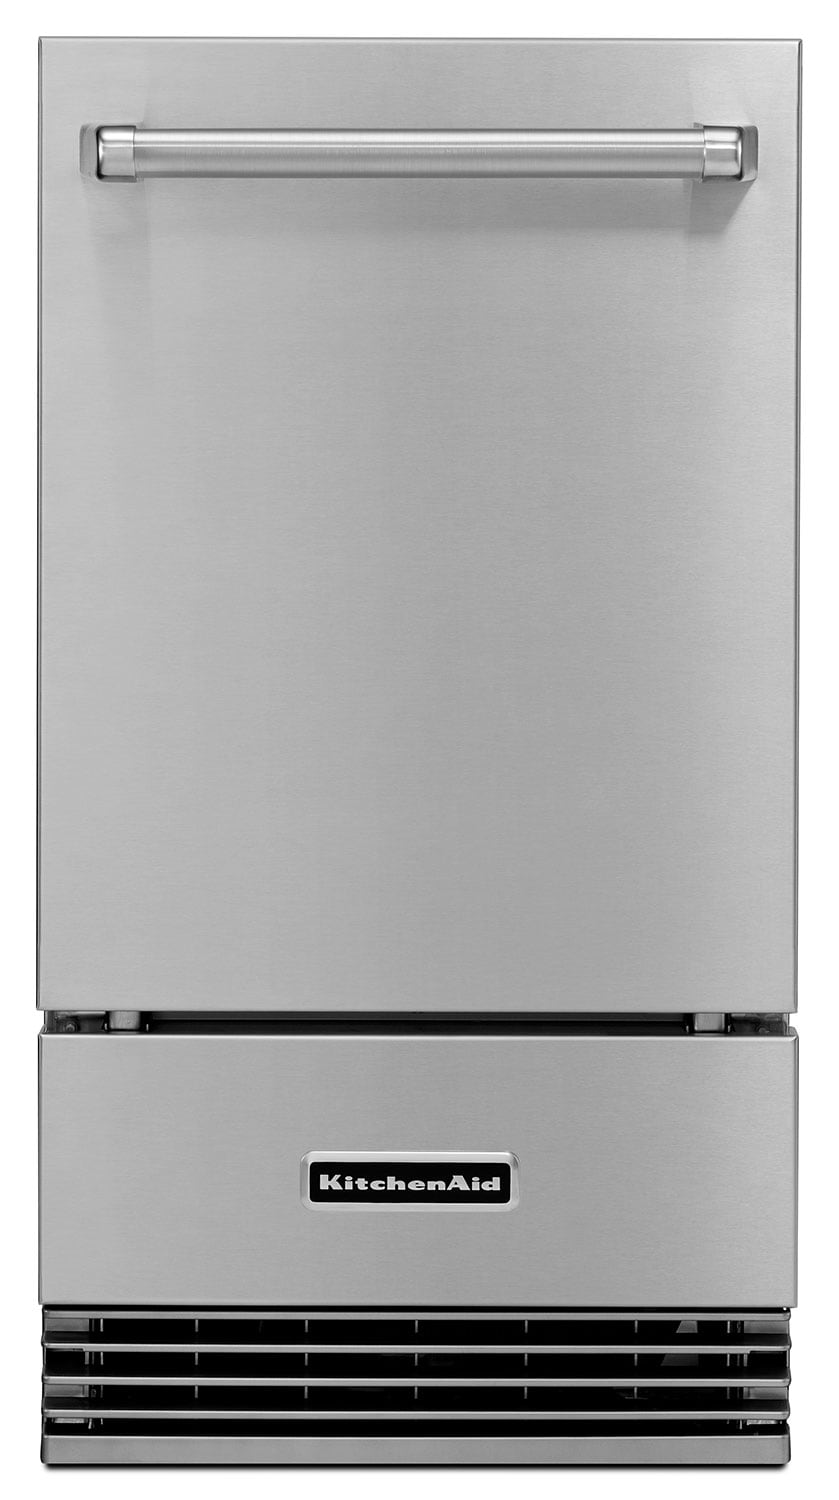 Refrigerators and Freezers - KitchenAid Stainless Steel Ice Maker - KUIO18NNZS